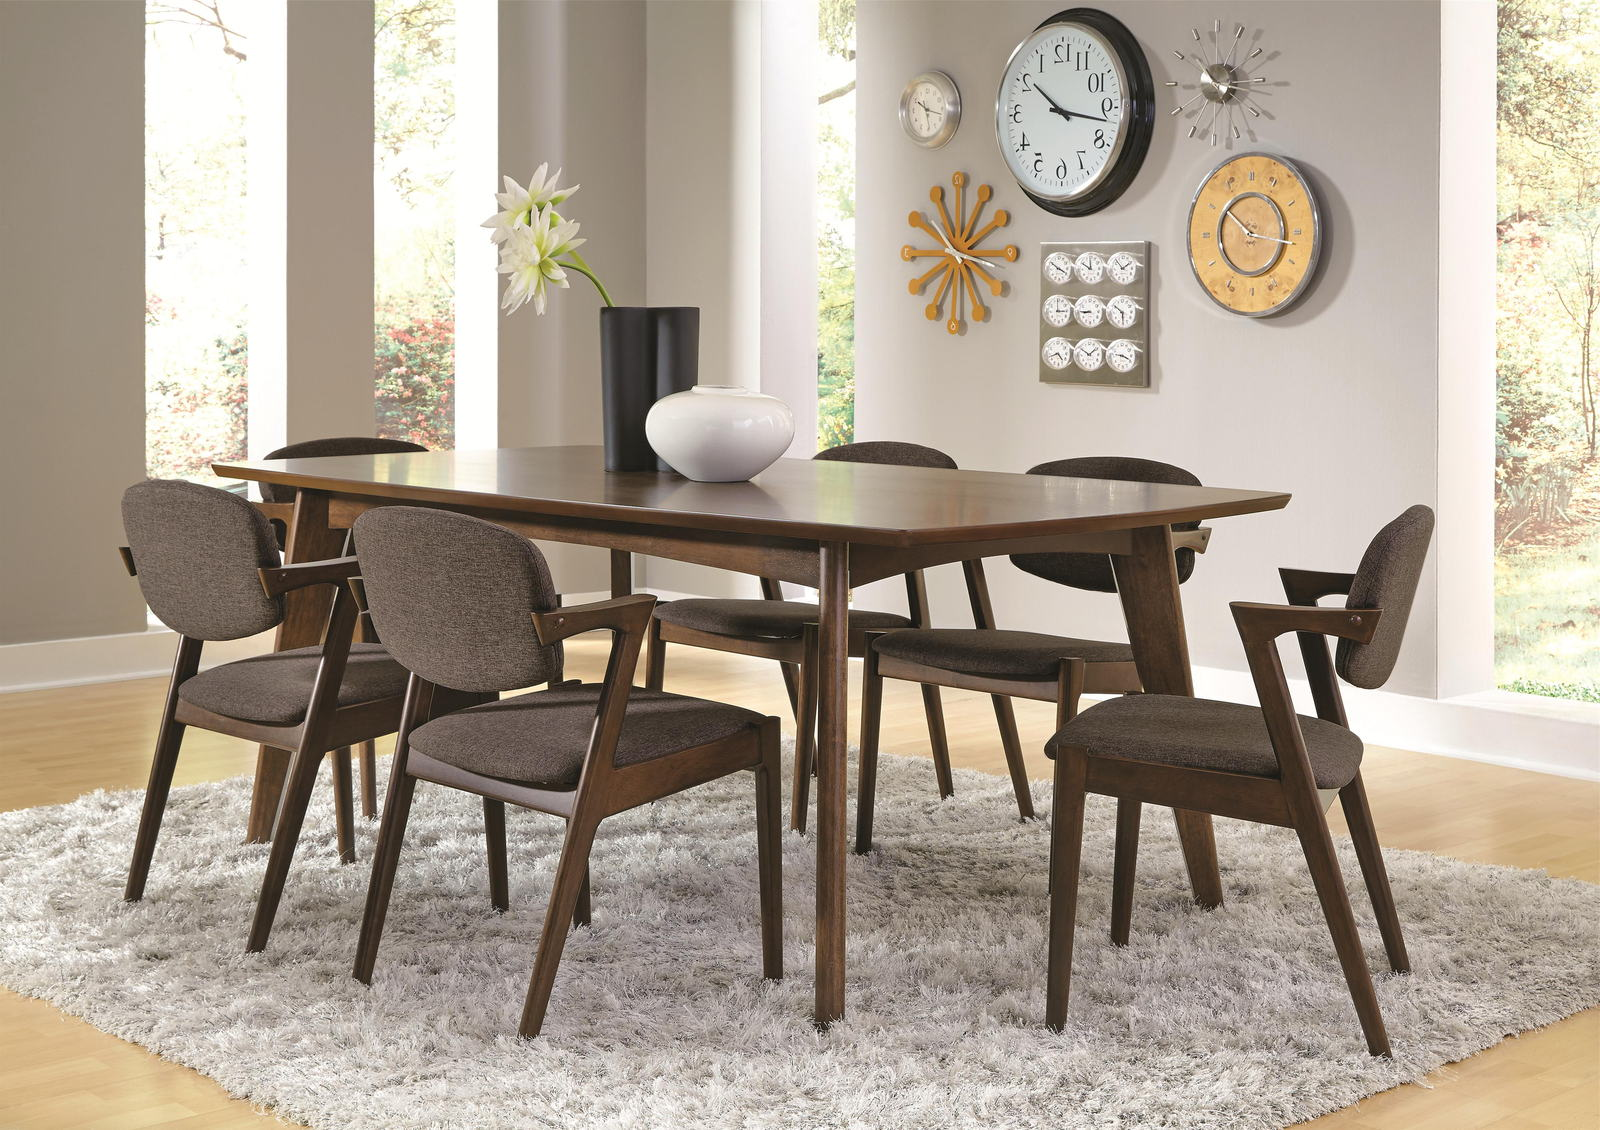 Coaster Malone Mid Century 7 Piece Dining Room Set In Dark Walnut By Dining Rooms Outlet